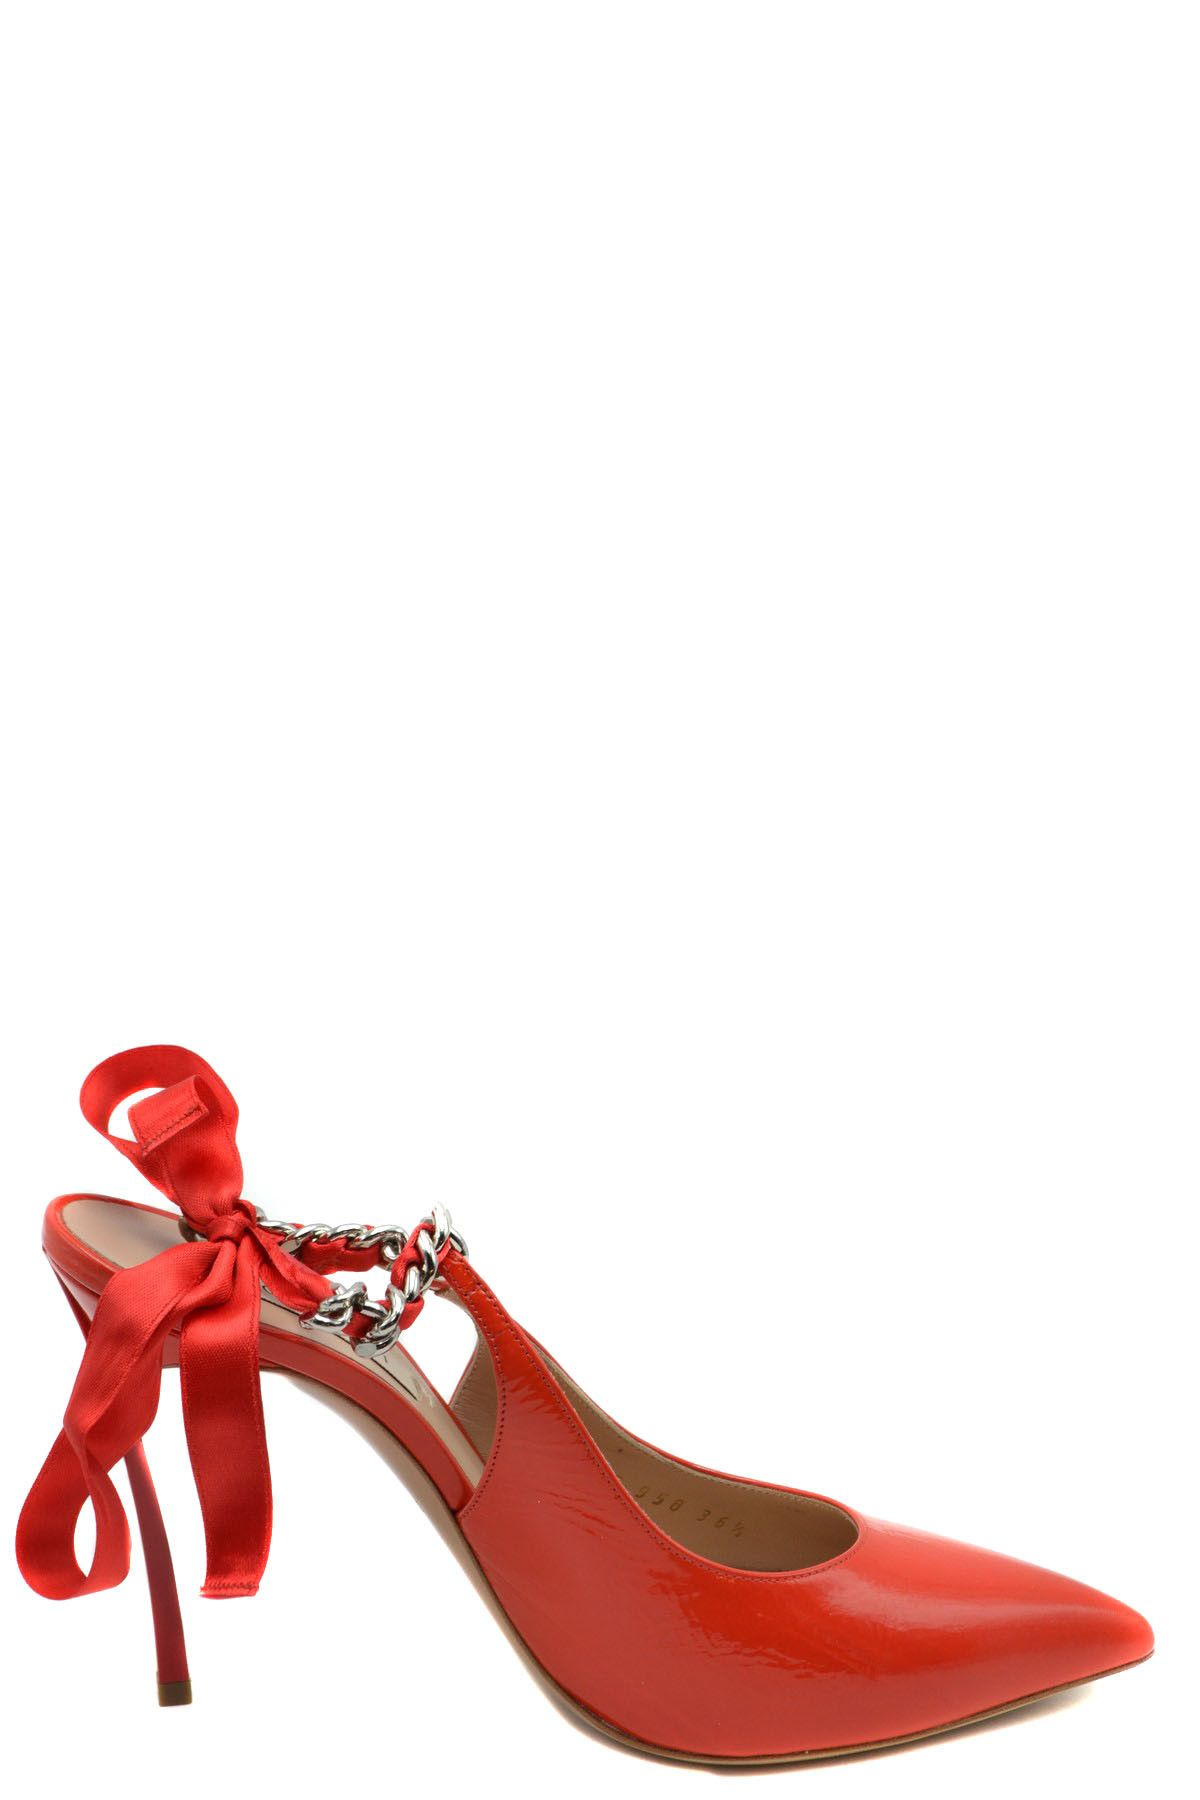 Casadei Women's Pumps Shoes In Red